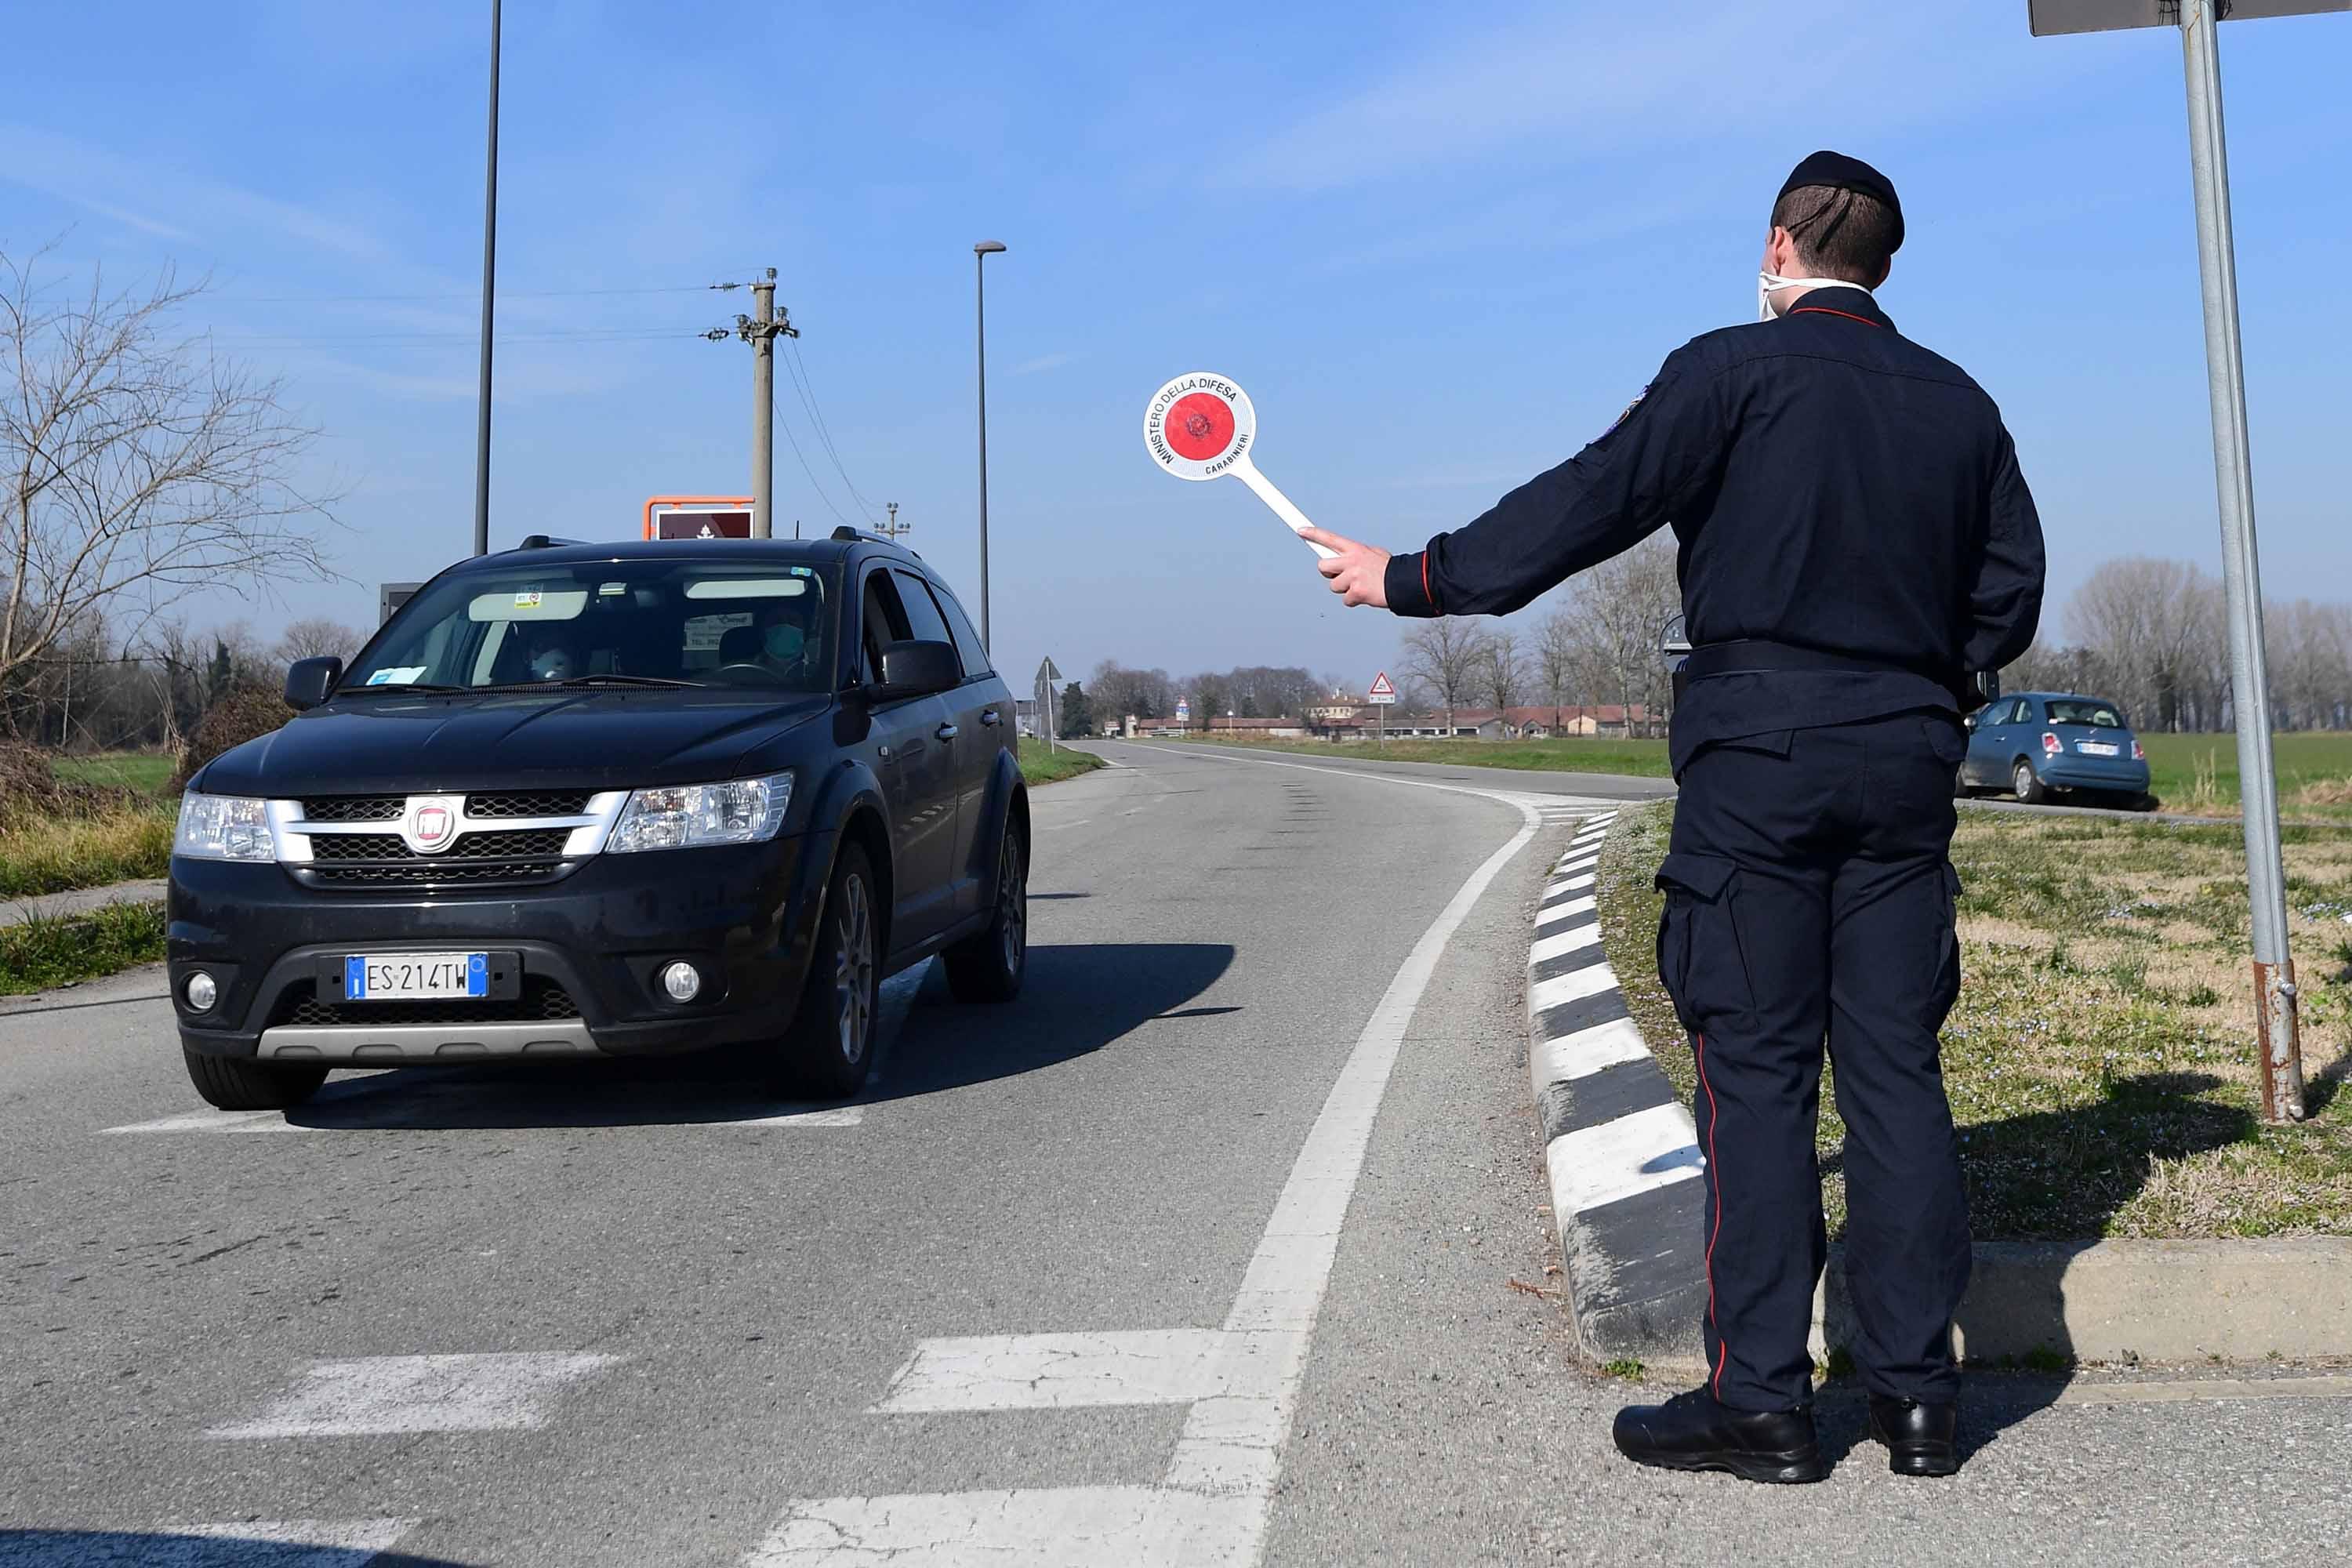 An Italian official stops a car at a police check-point near Castiglione d'Adda, southeast of Milan, on Monday.